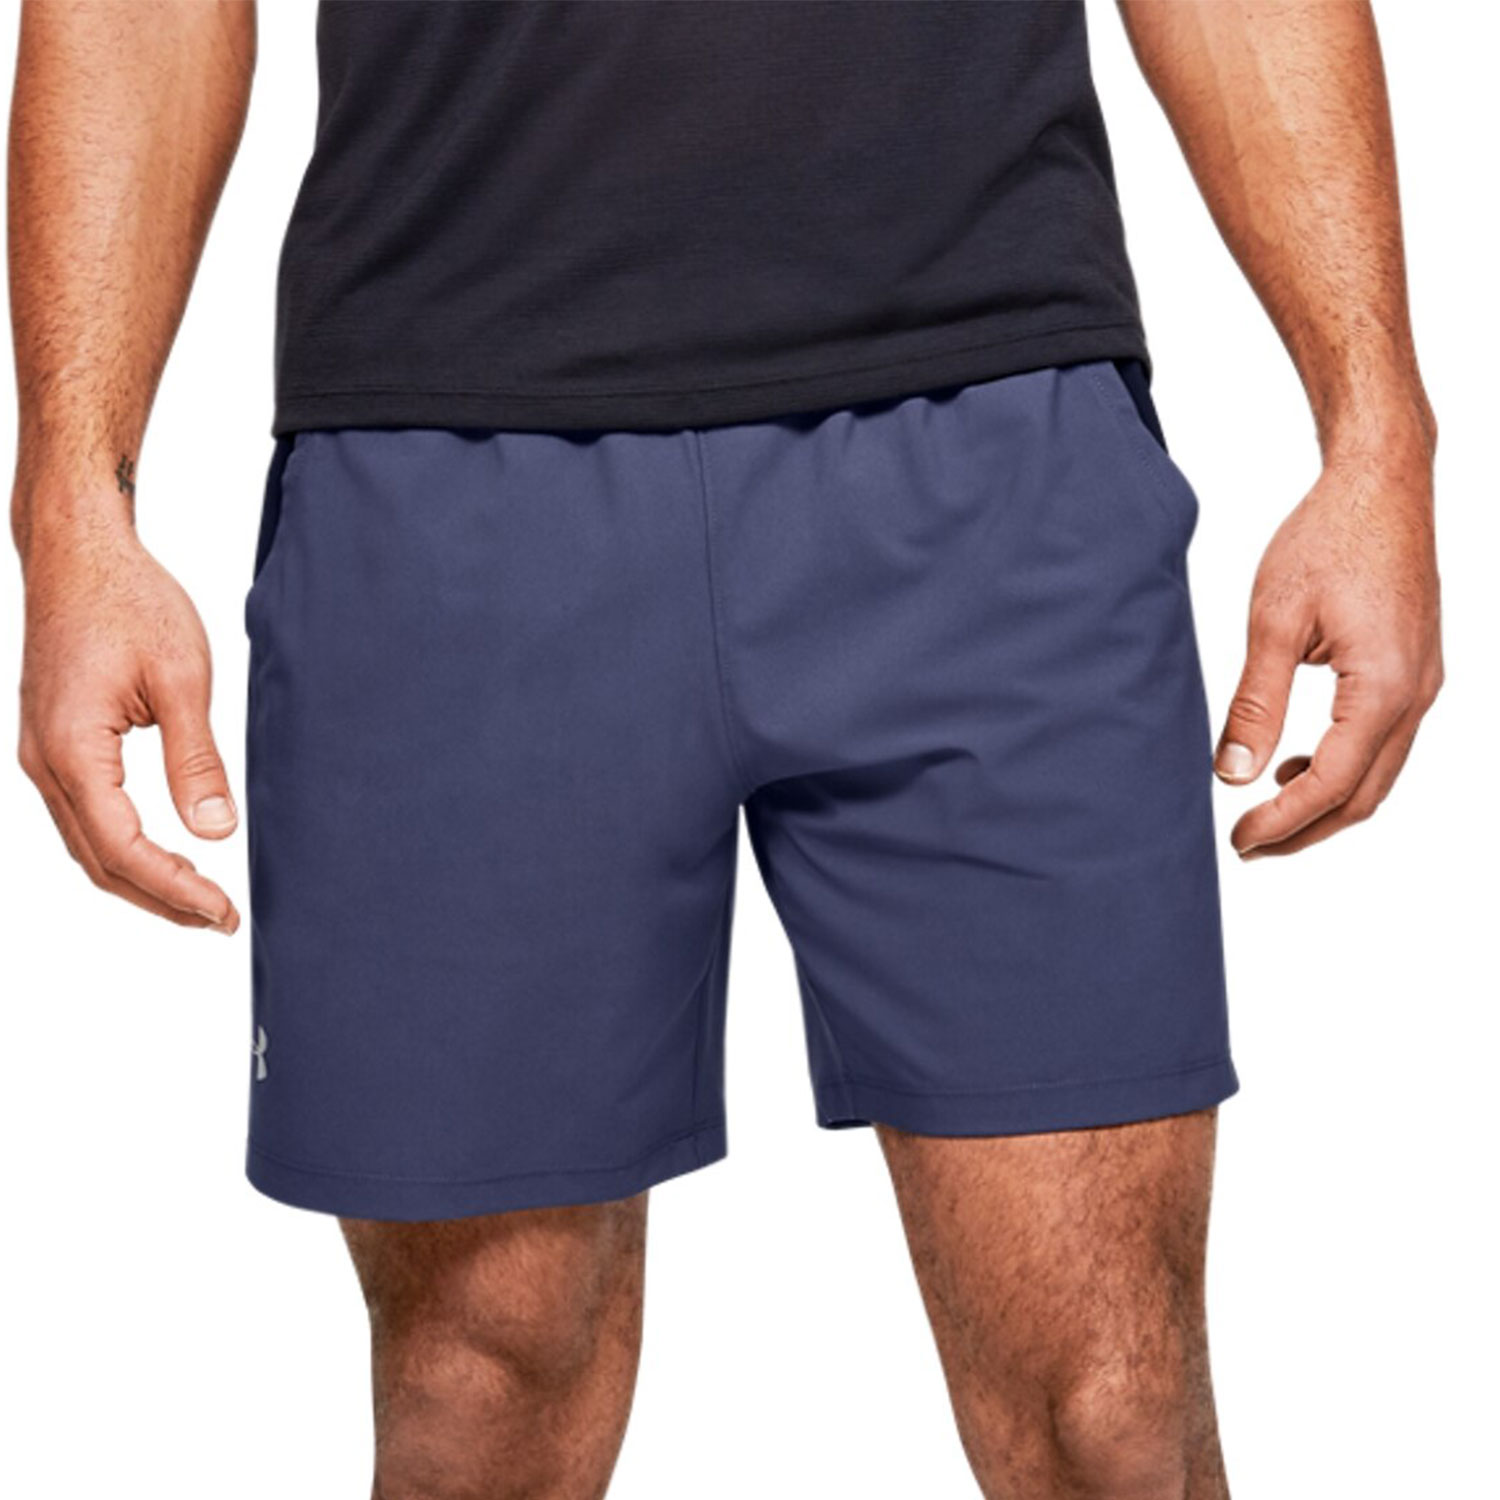 Under Armour Launch Stretch Woven 7in Shorts - Blue